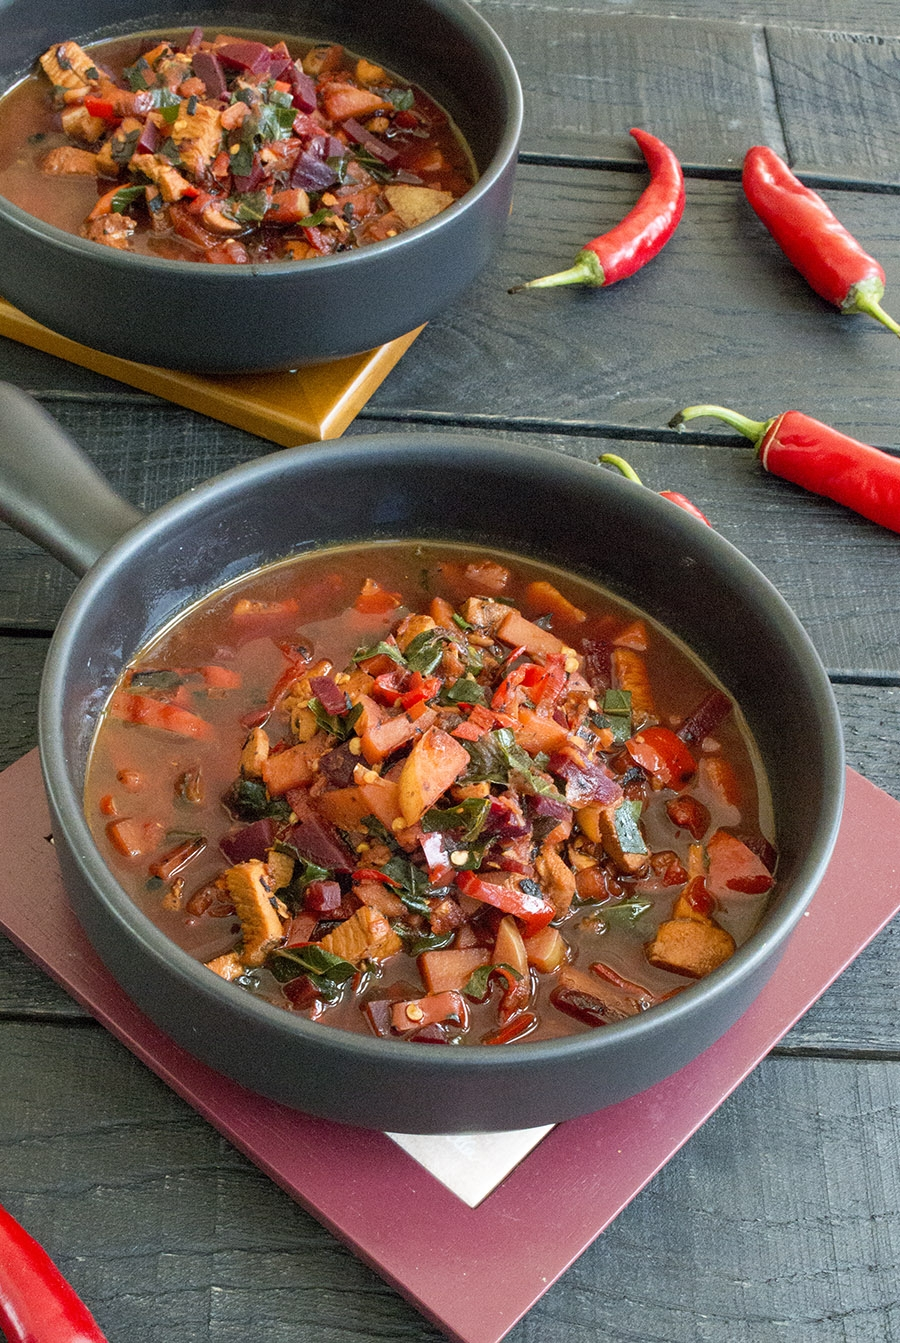 Spicy Red Stew